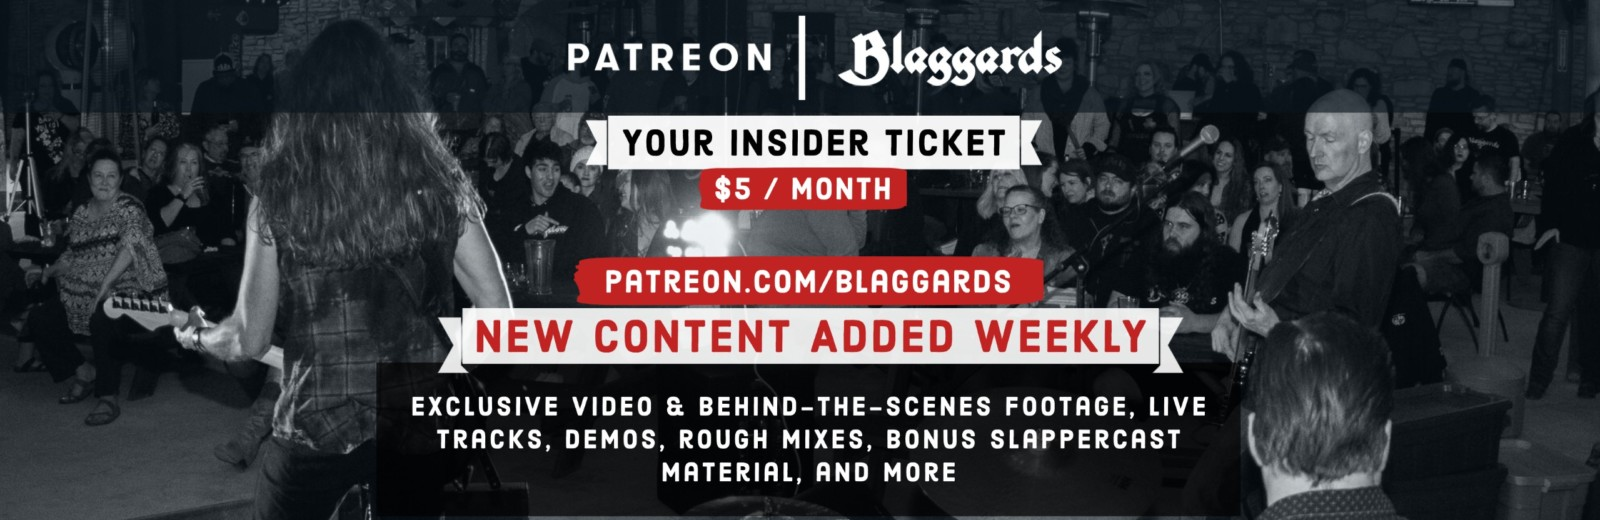 Join Blaggards on Patreon